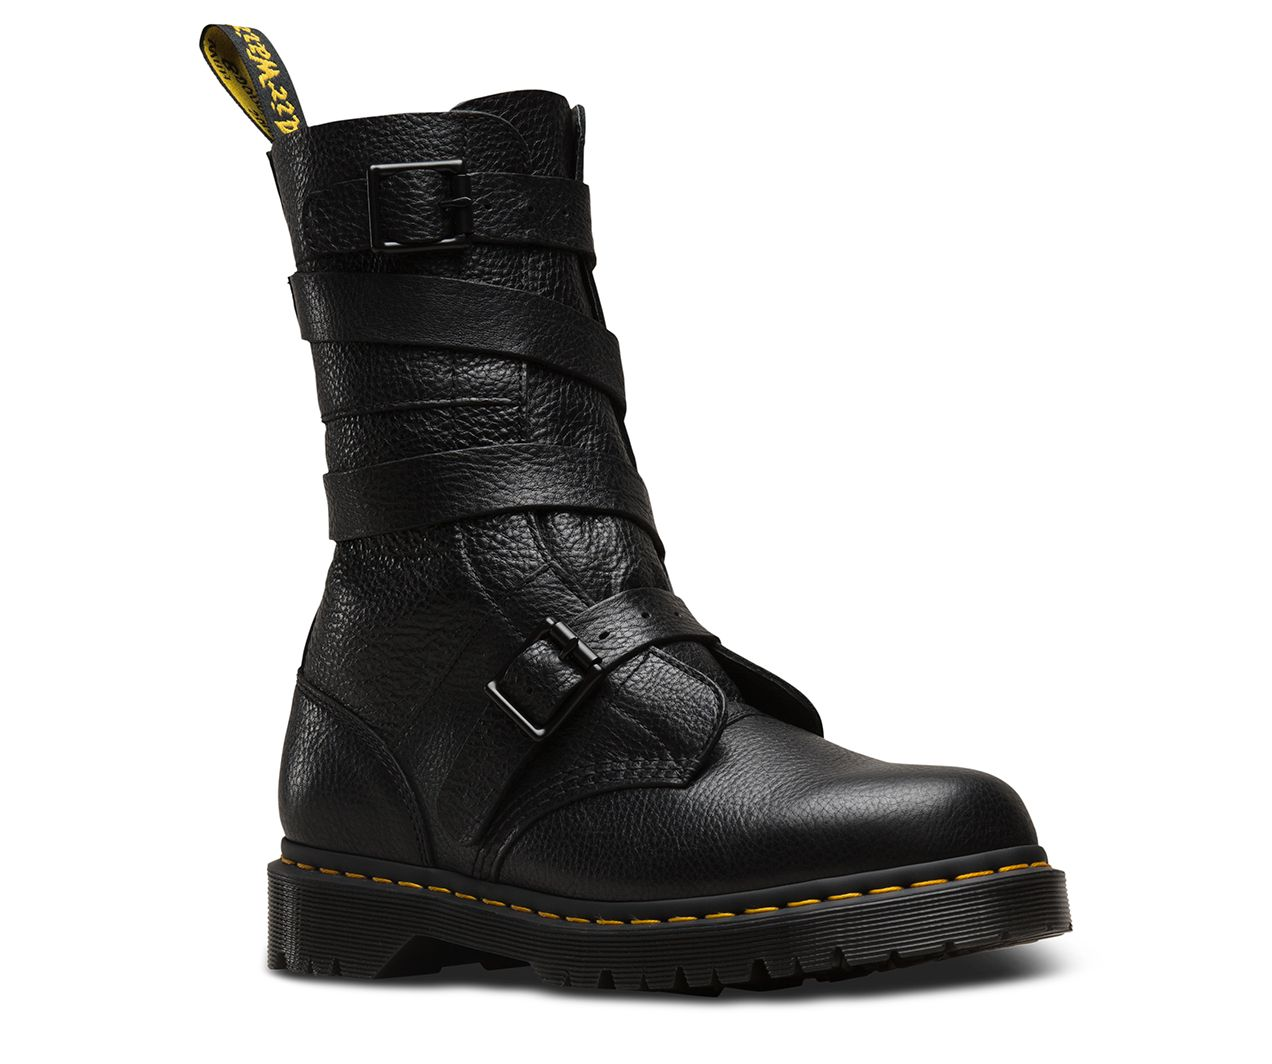 f3186b9ce07 A moto-style boot with Dr. Martens edge